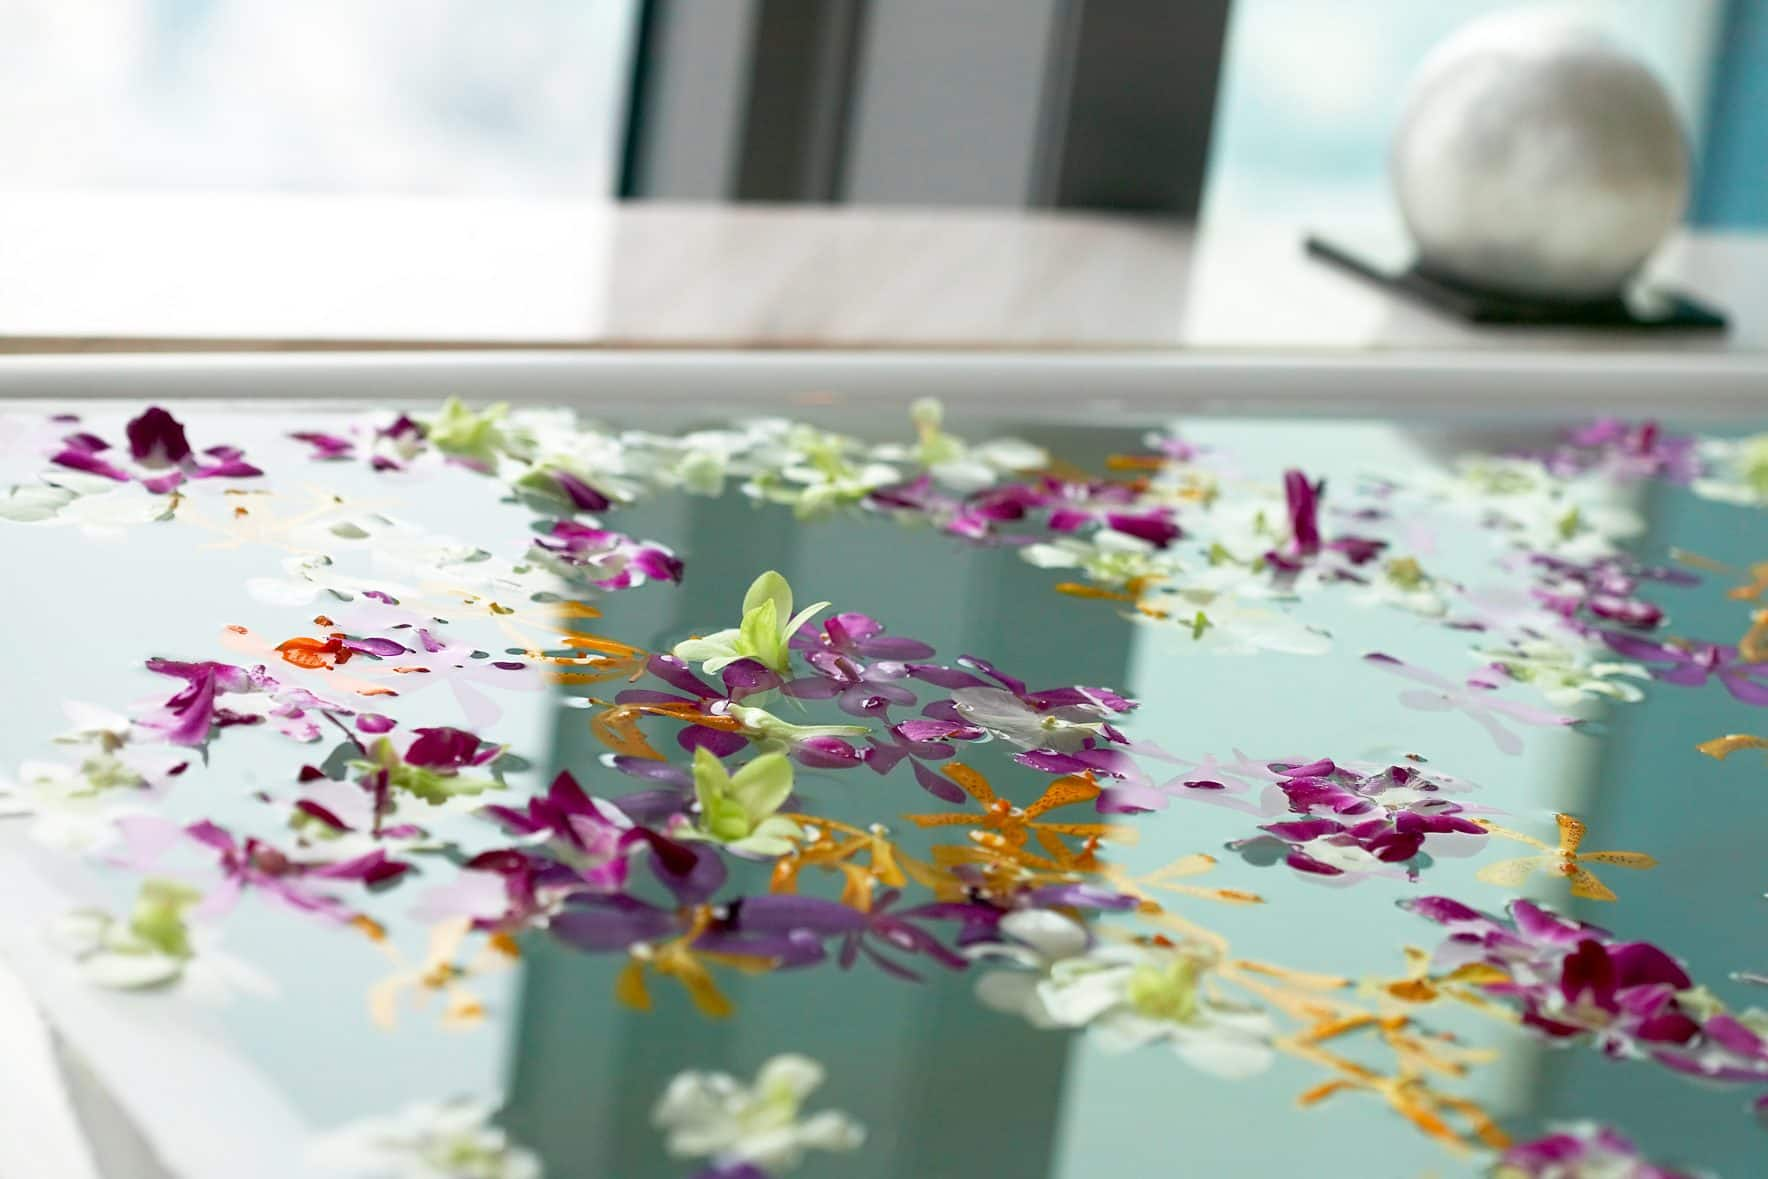 Bath with flowers petals in the tranquility suite at the spa at Mandarin Oriental, Tokyo